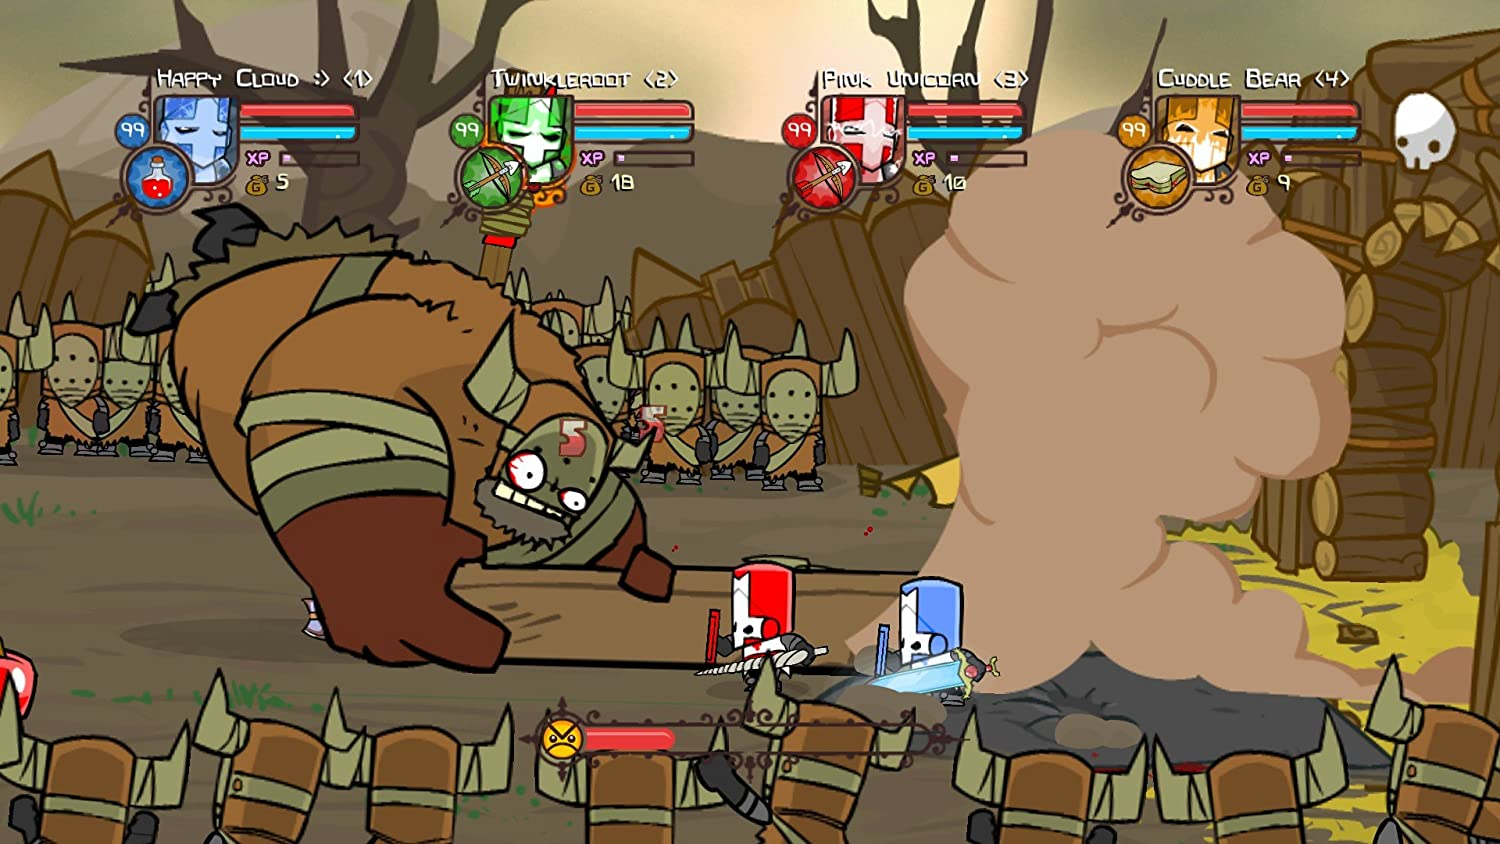 amazon com castle crashers online game code video games